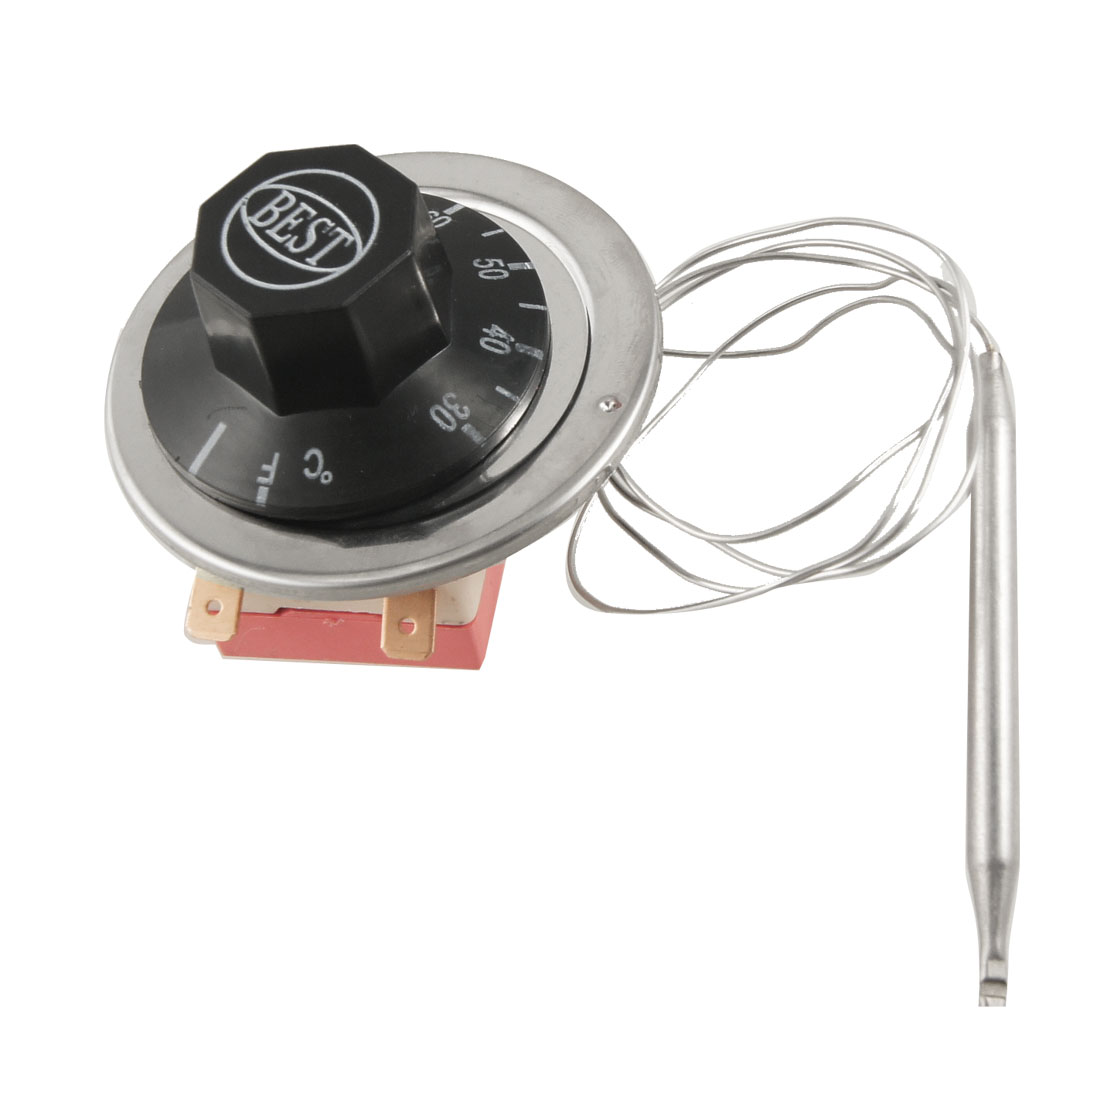 30-80 Celsius Degree Adjustable Temperature Controller Capillary Thermostat